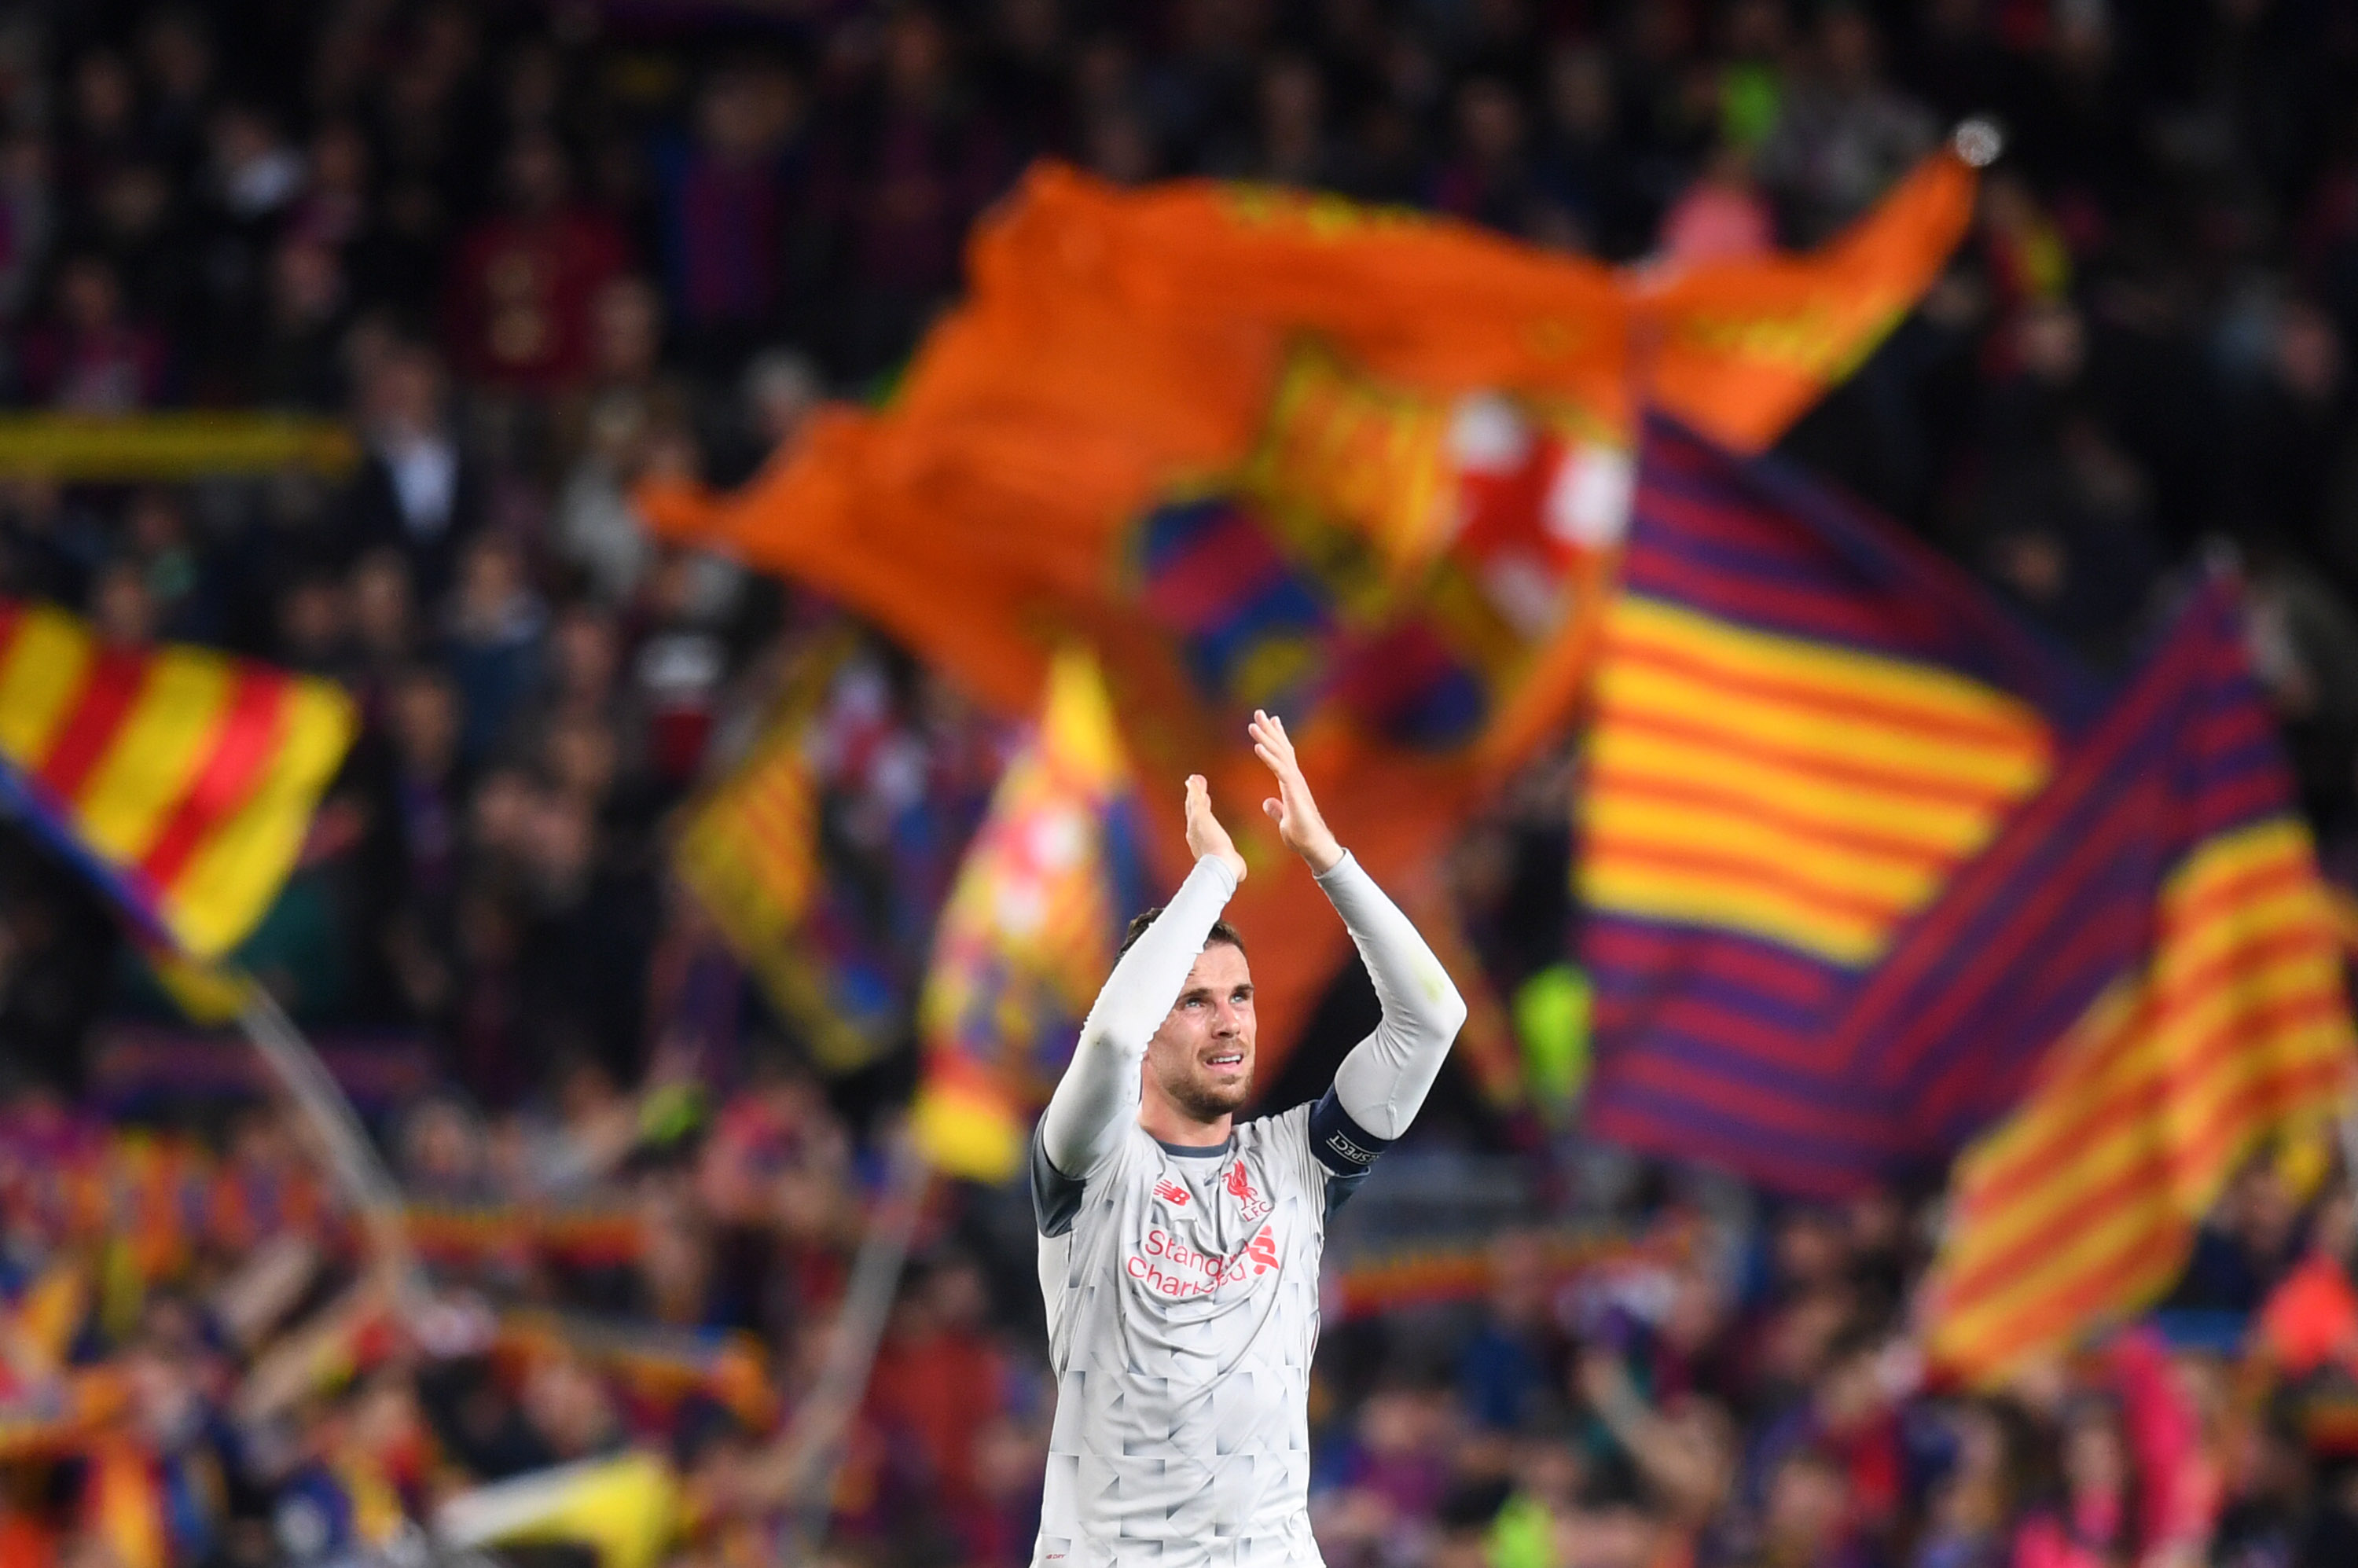 A switch to Camp Nou in the offing? (Photo by Michael Regan/Getty Images)